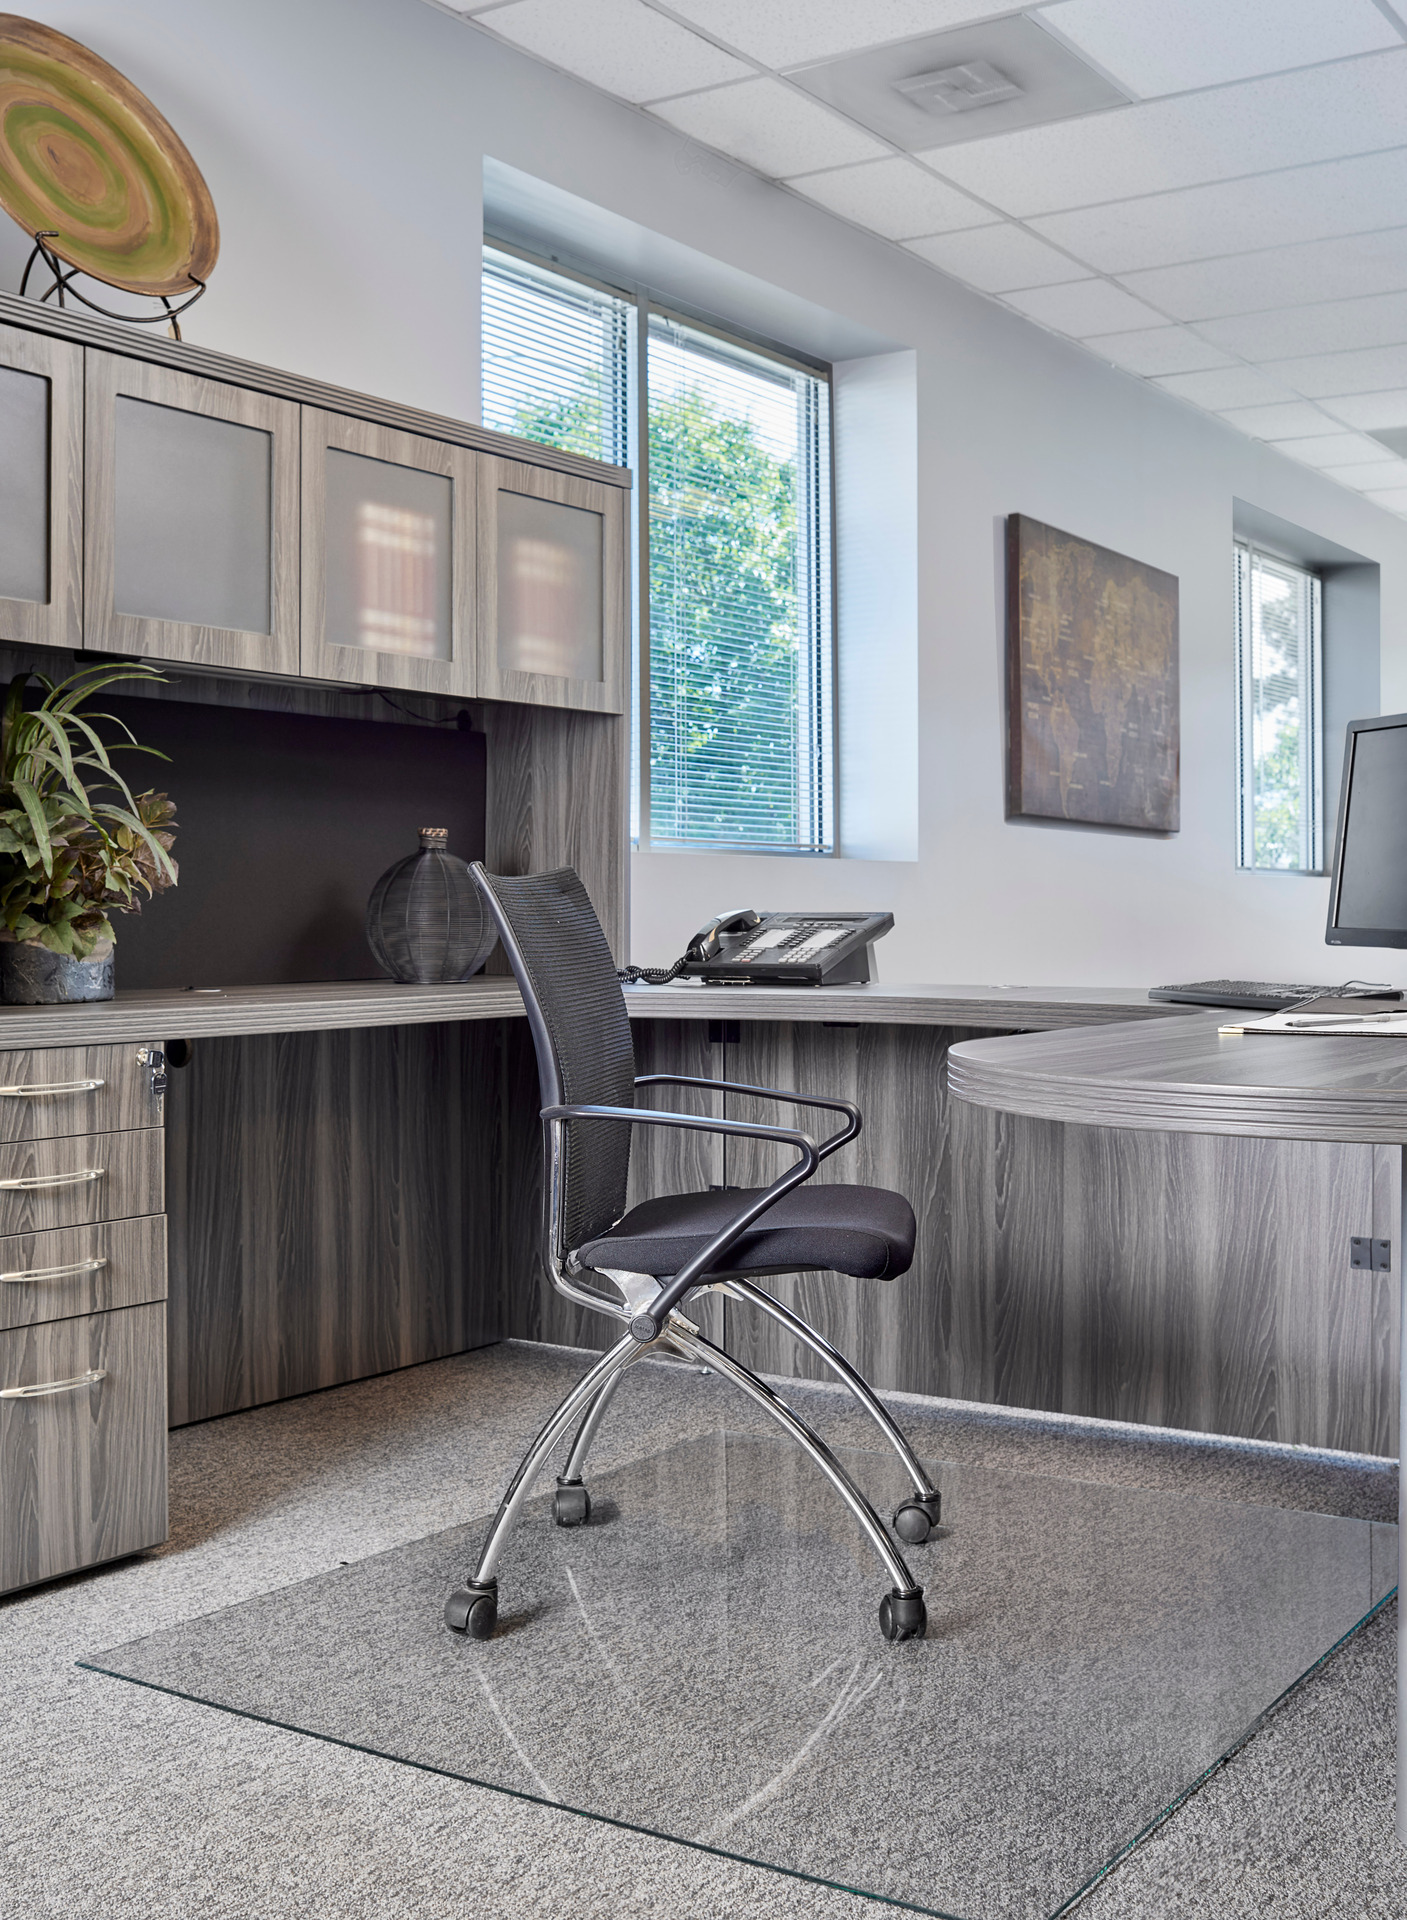 Upscale beauty and easy gliding is how Denver Glass Interiors Moltin Glass Chair Mats is described.